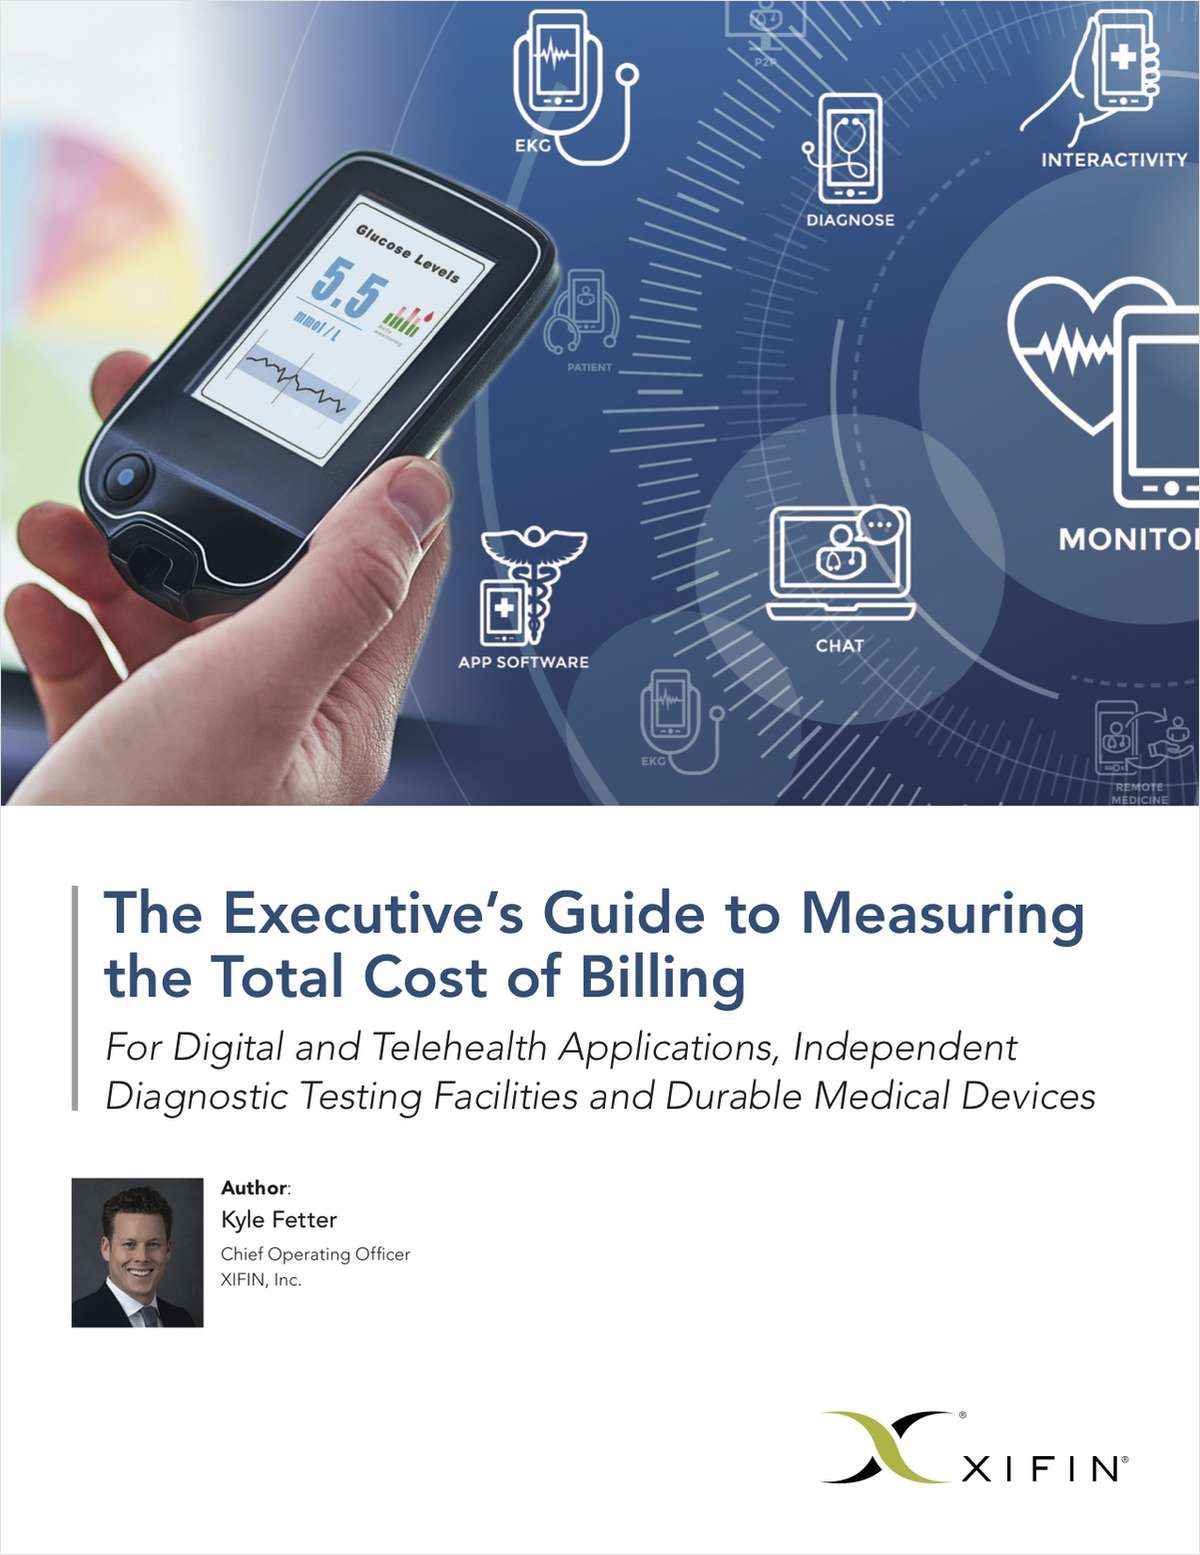 The Executive's Guide to Measuring Total Cost of Billing for Medical Devices and Digital and Telehealth Applications